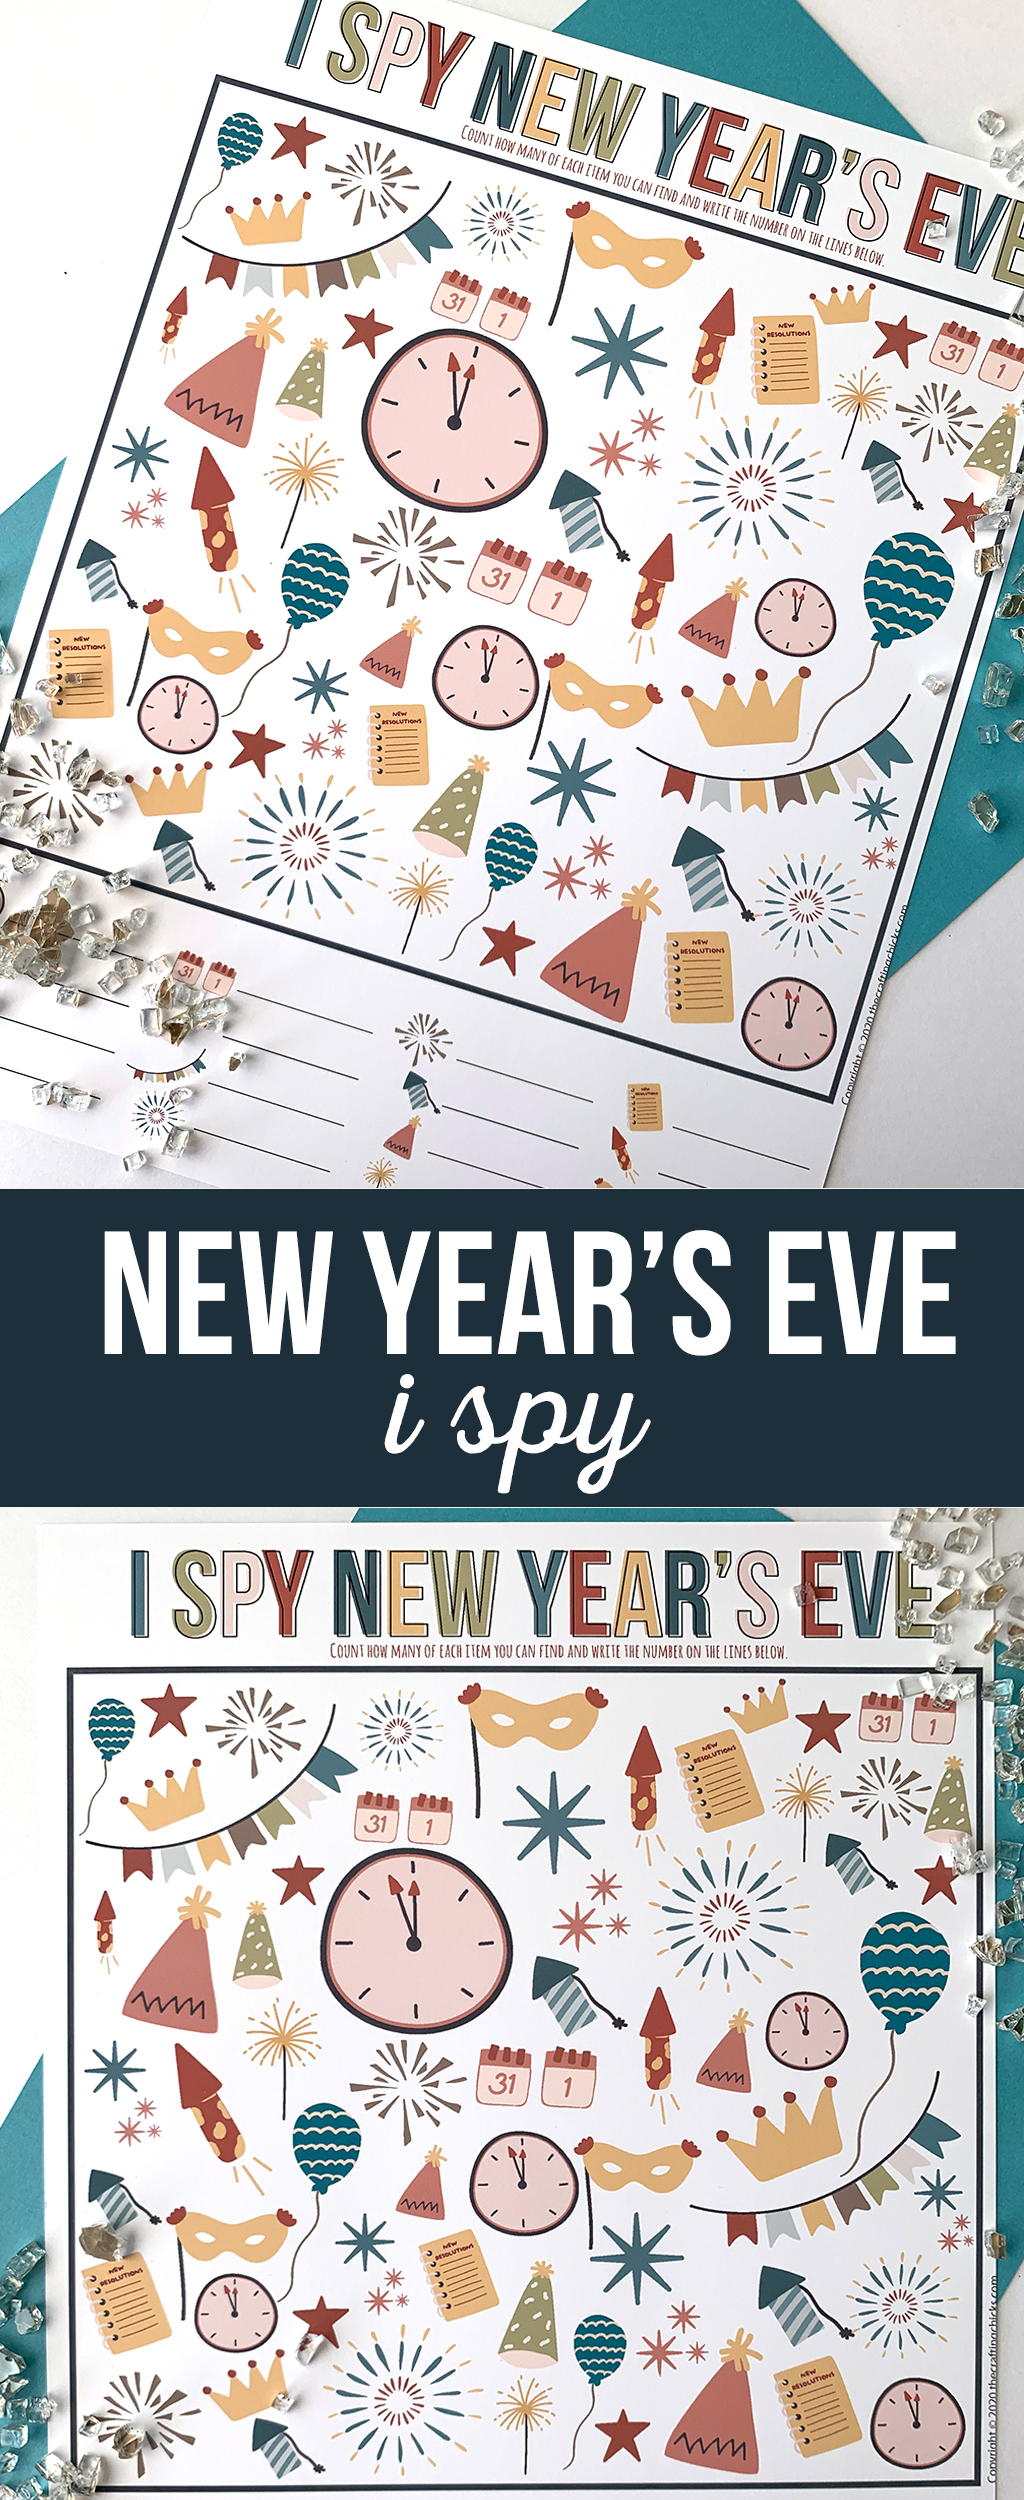 I Spy New Year's Eve Printable Game